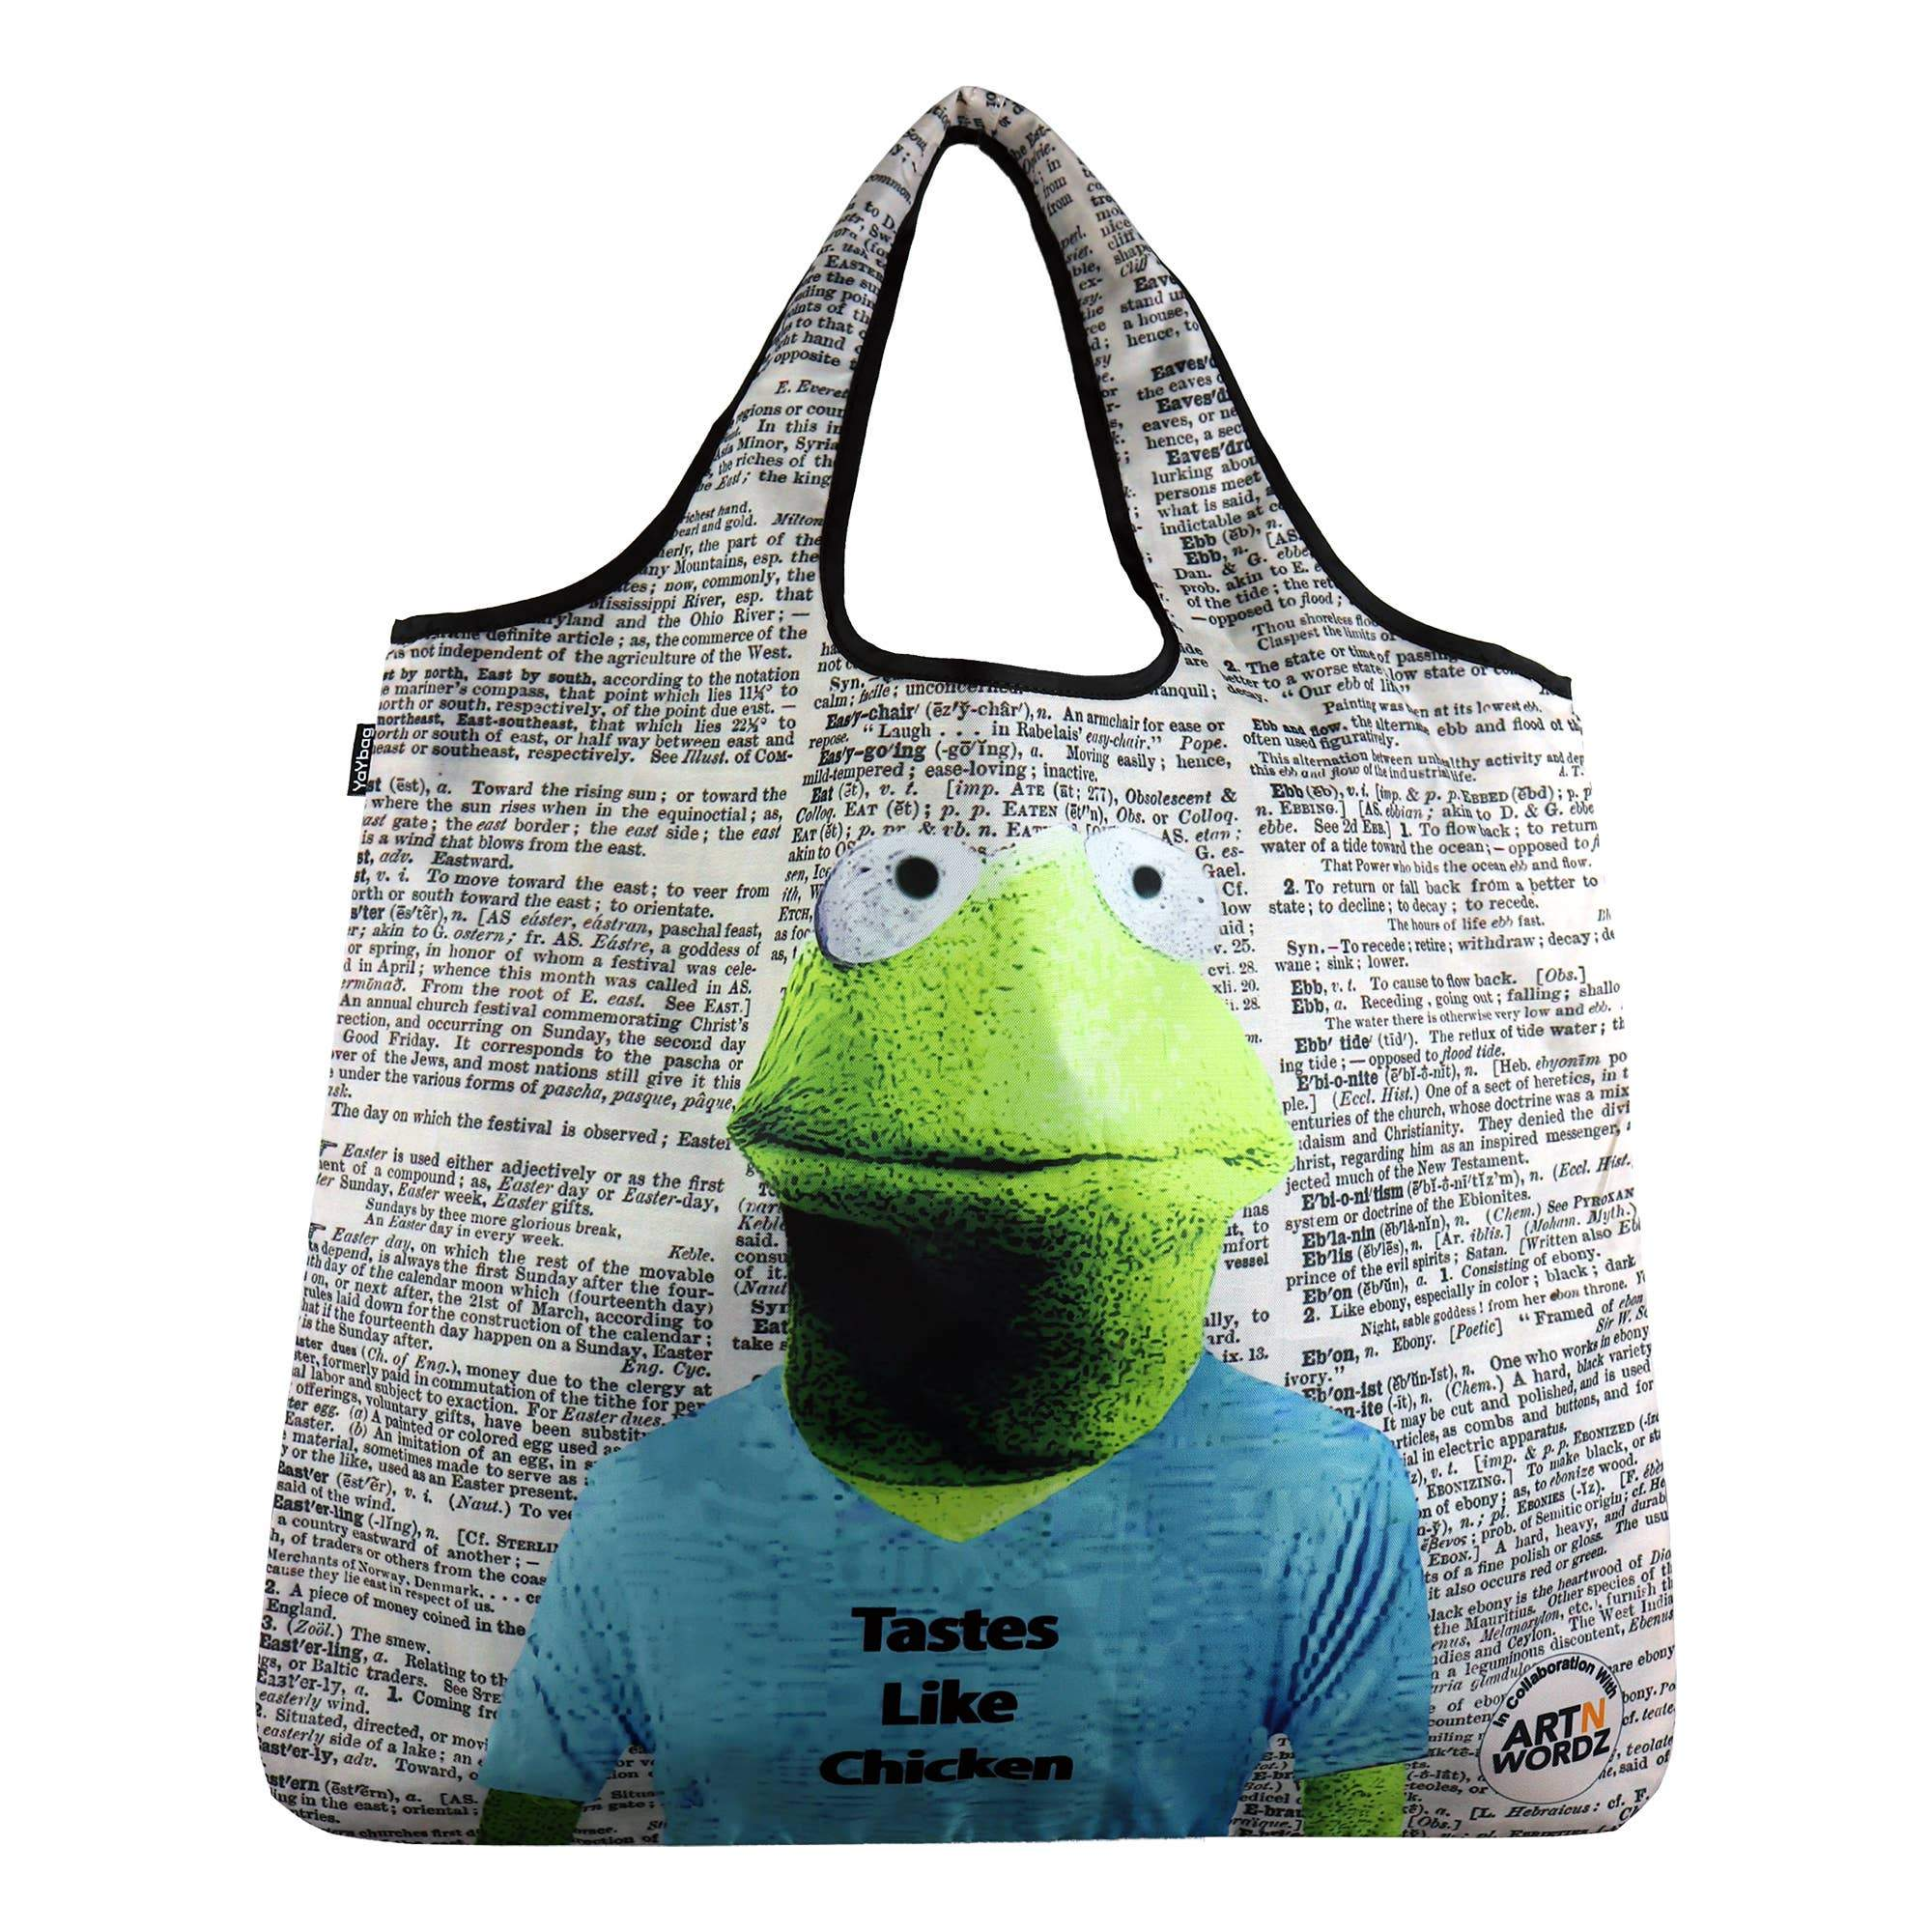 Buy Kermit the Frog Wearing Tastes Like Chicken YaYbag ORIGINAL from Walking Pants Curiosities, the Most un-General Gift Store in Downtown Memphis, Tennessee!